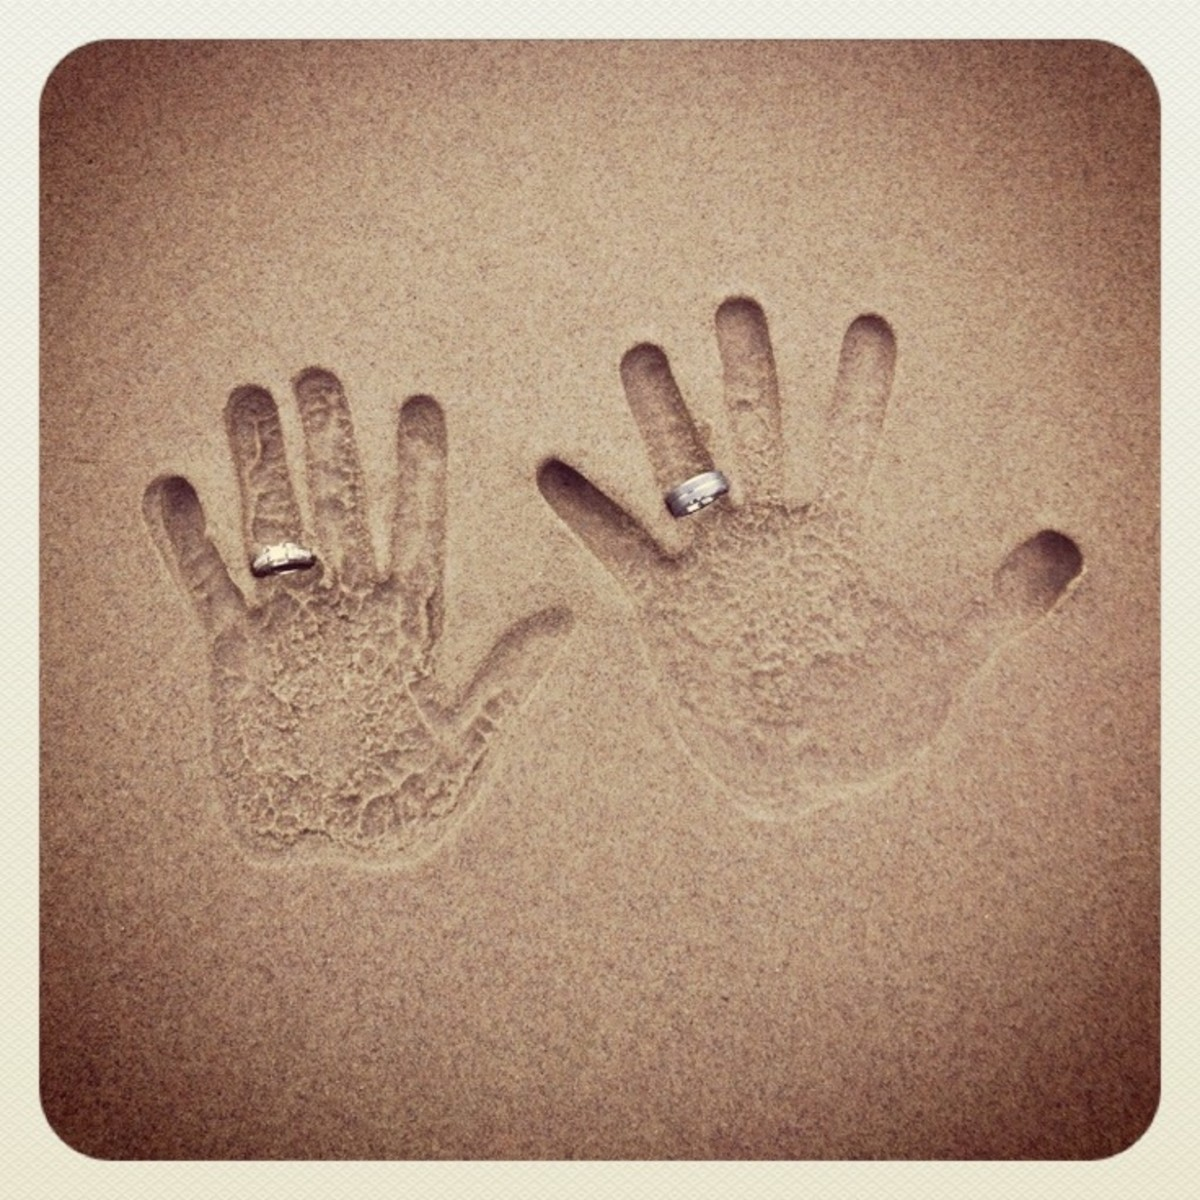 His and her handprints with rings on sand